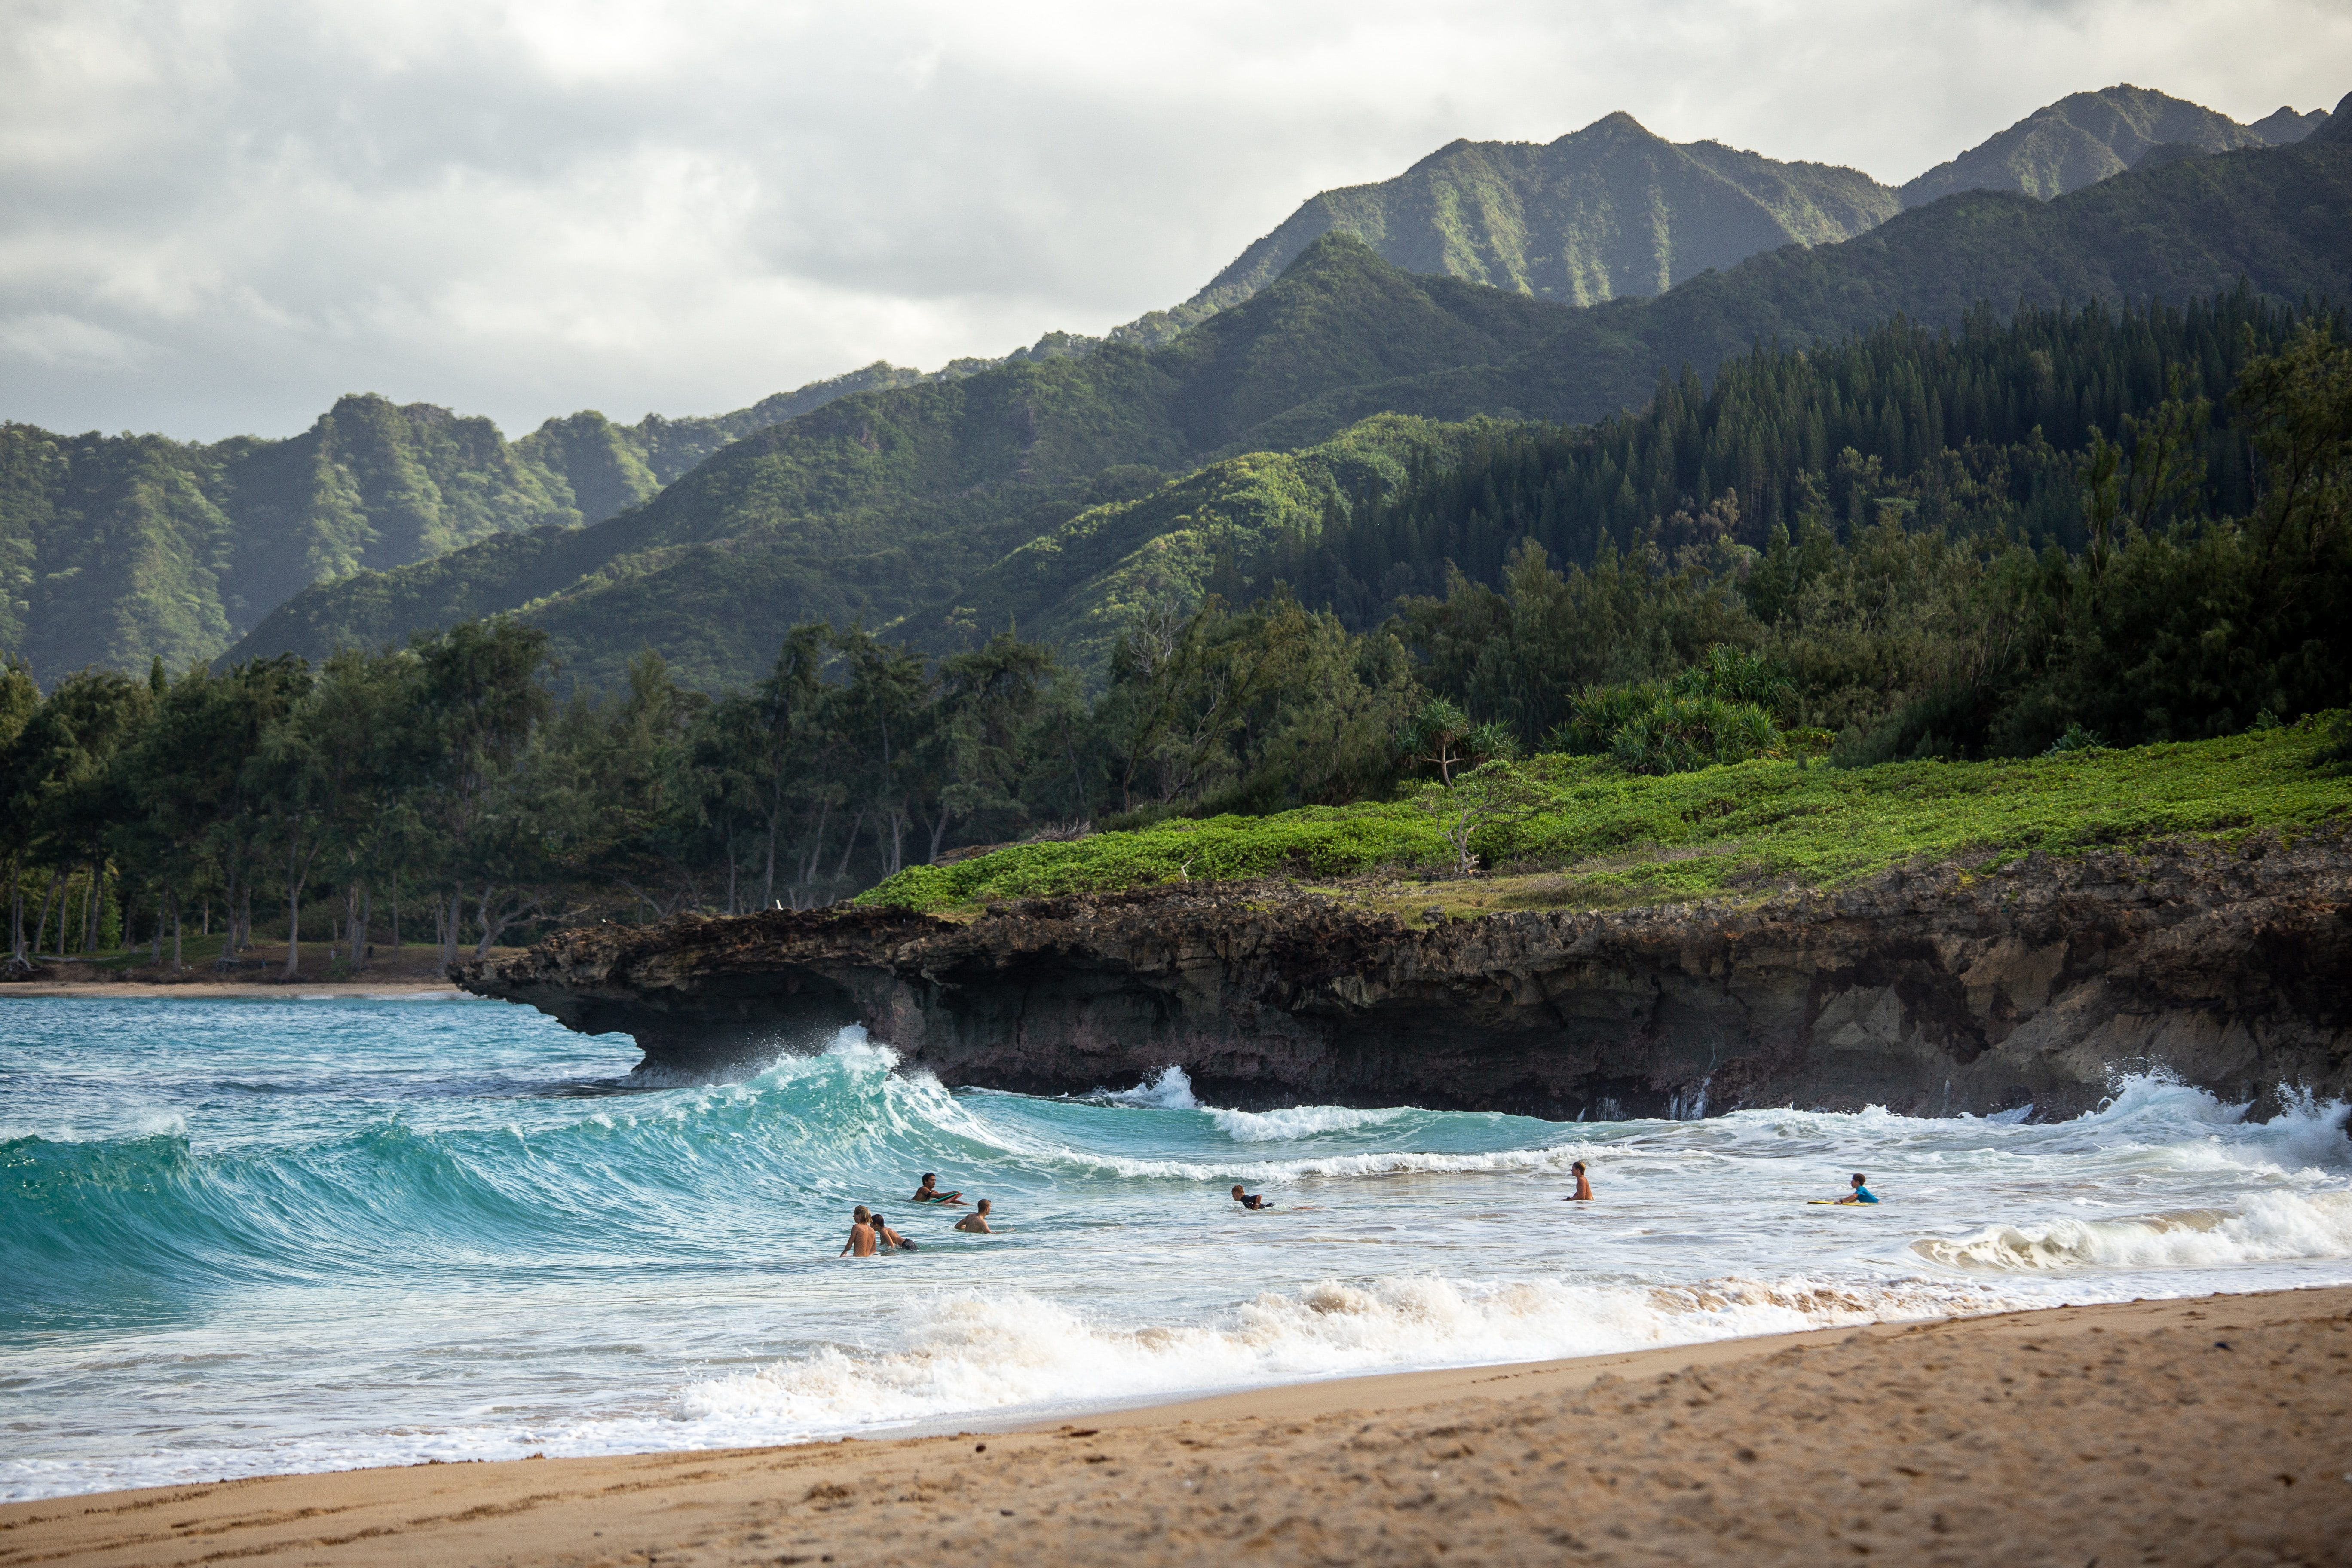 10 Uncommon and Valuable Tips for Planning your Hawai'i Trip